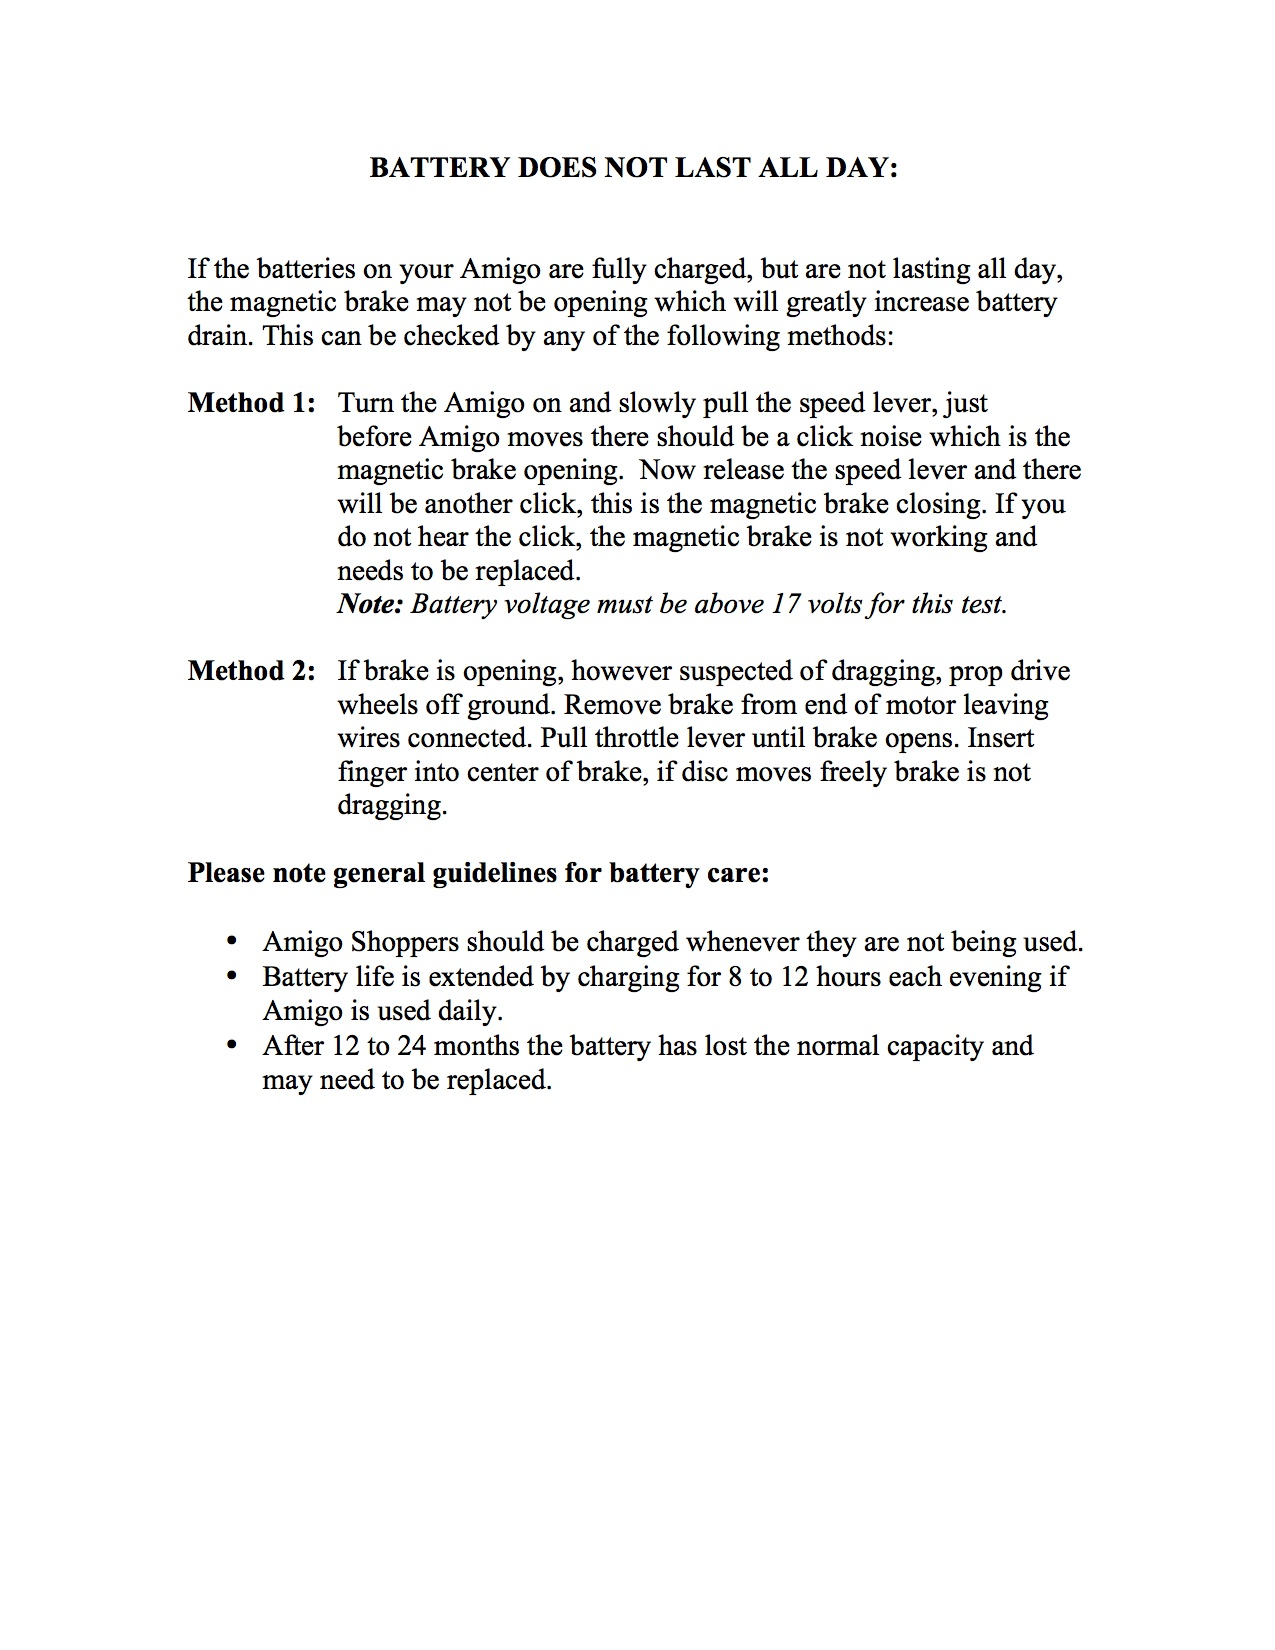 Frequently Asked Questions Amigo Mobility Wiring Diagram To Eliminate Battery Save Does Not Last All Day